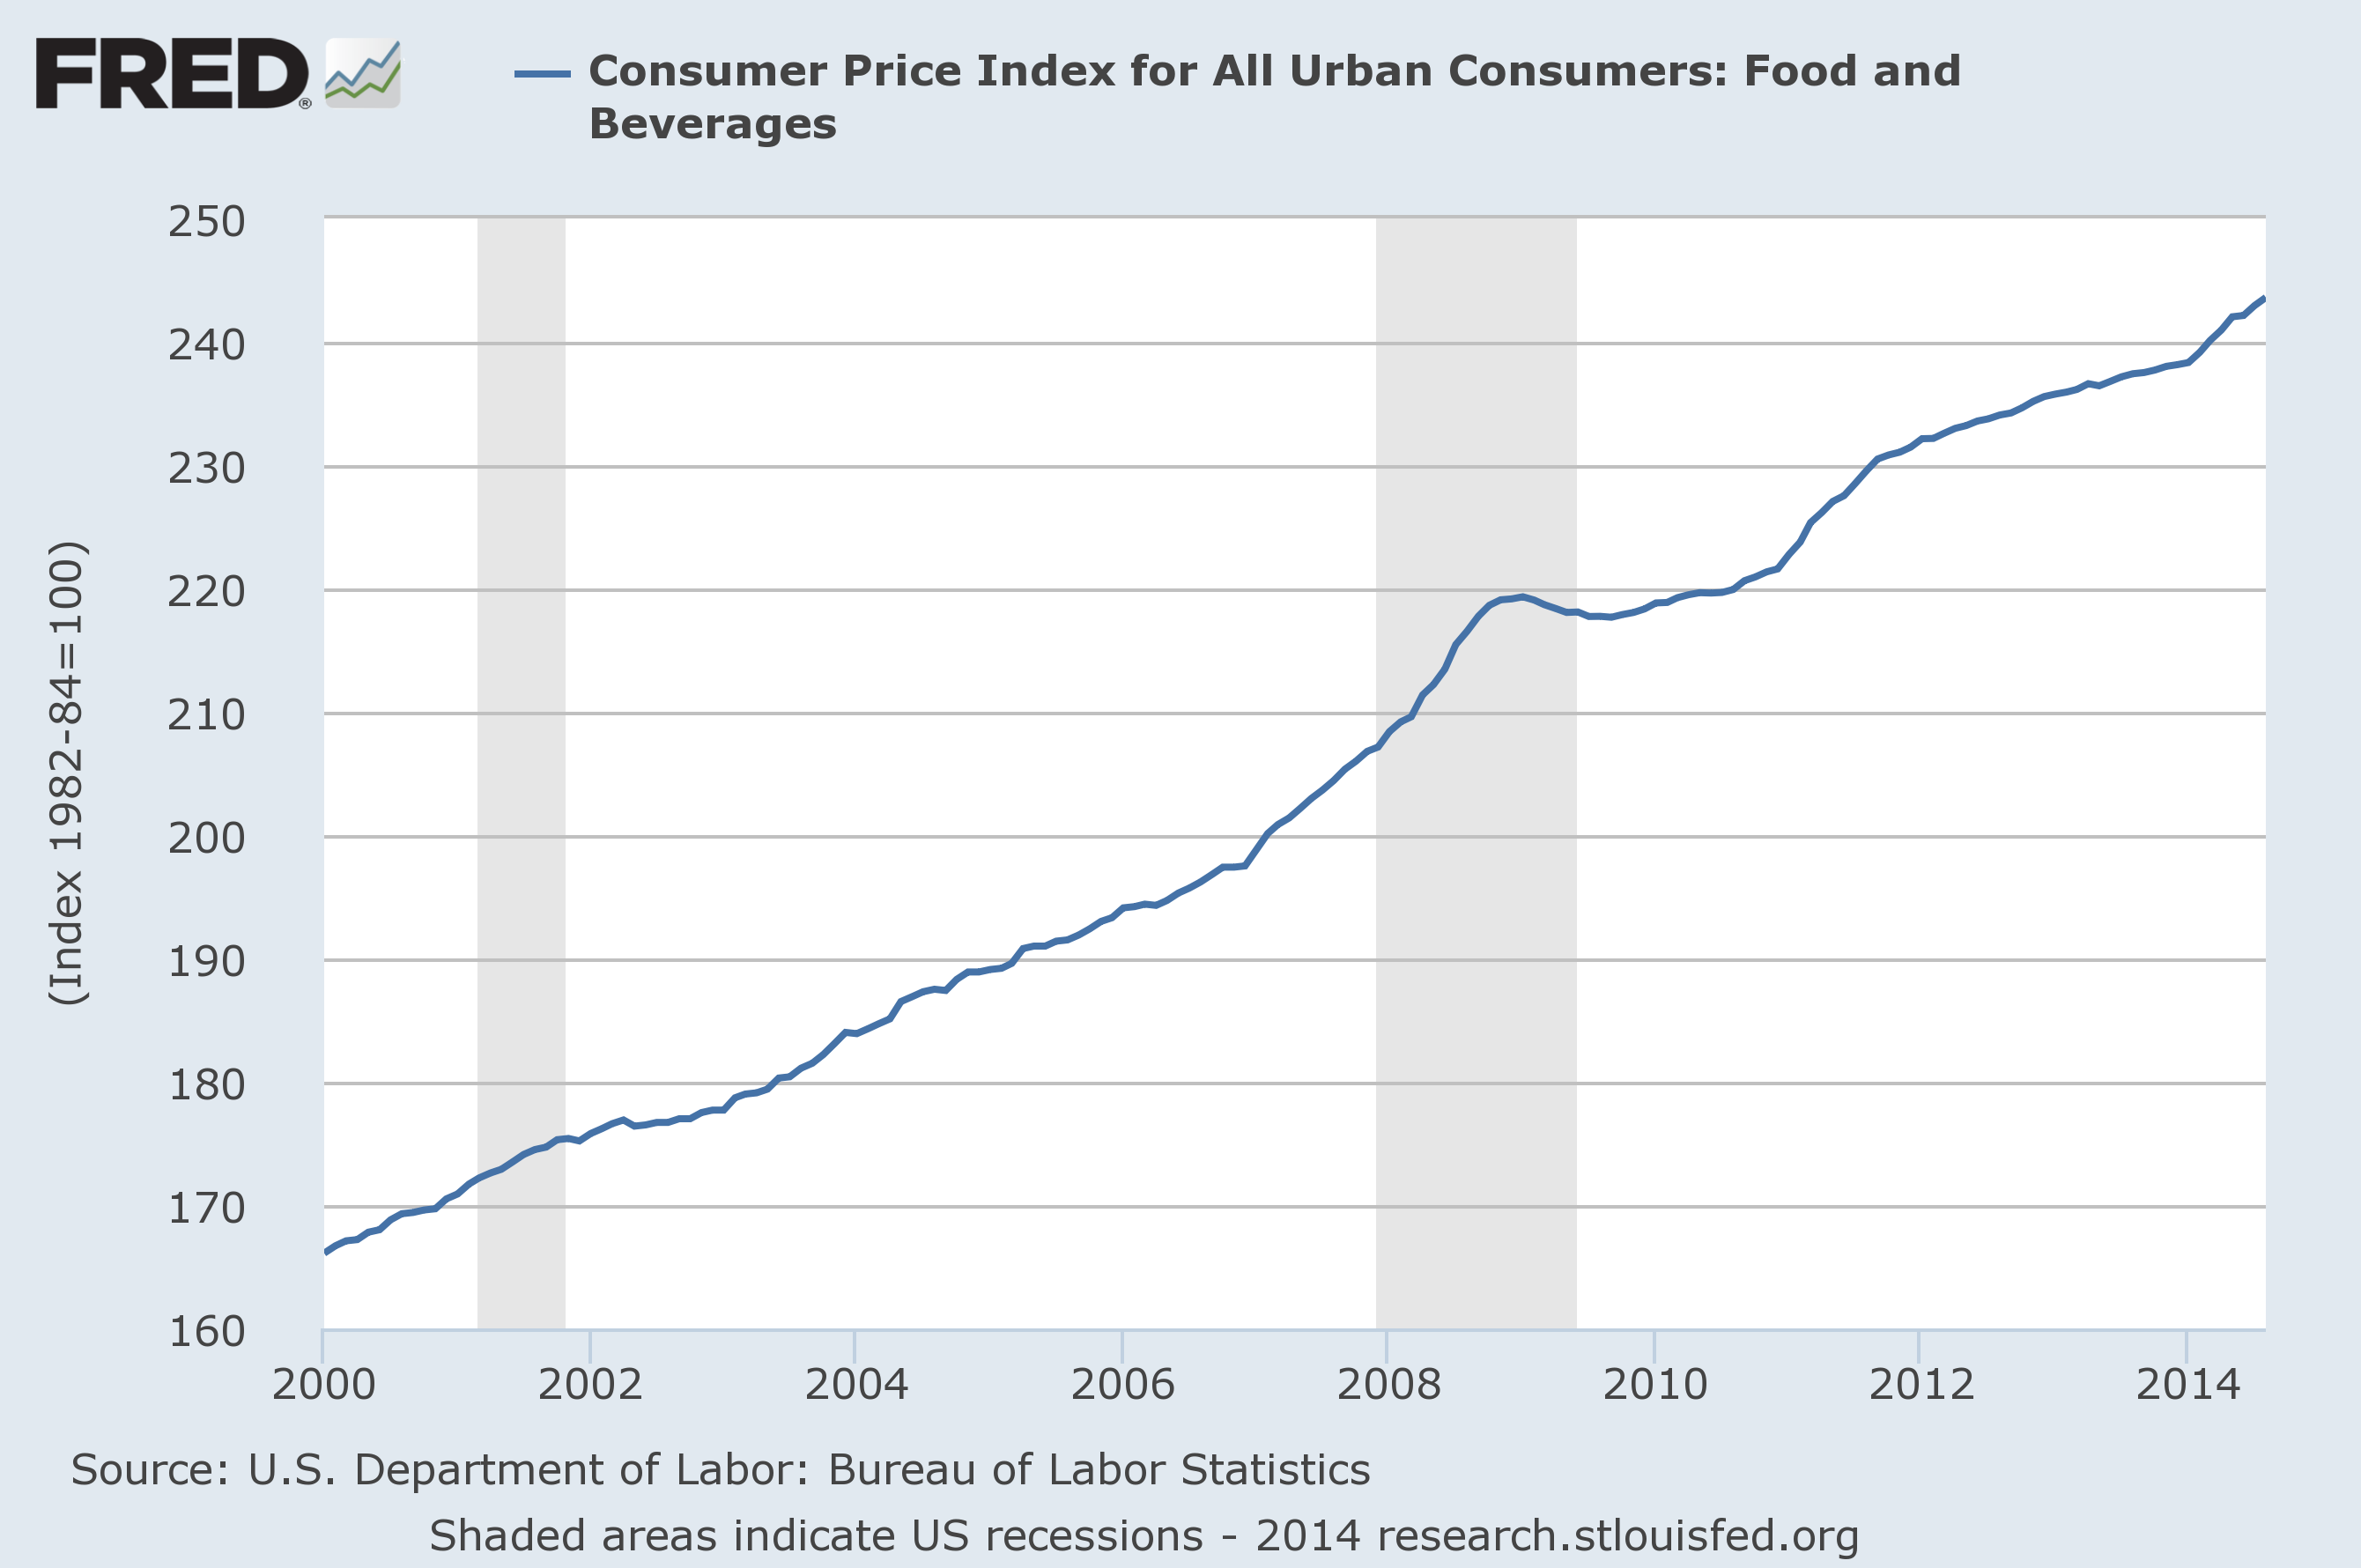 effects of food inflation in urban